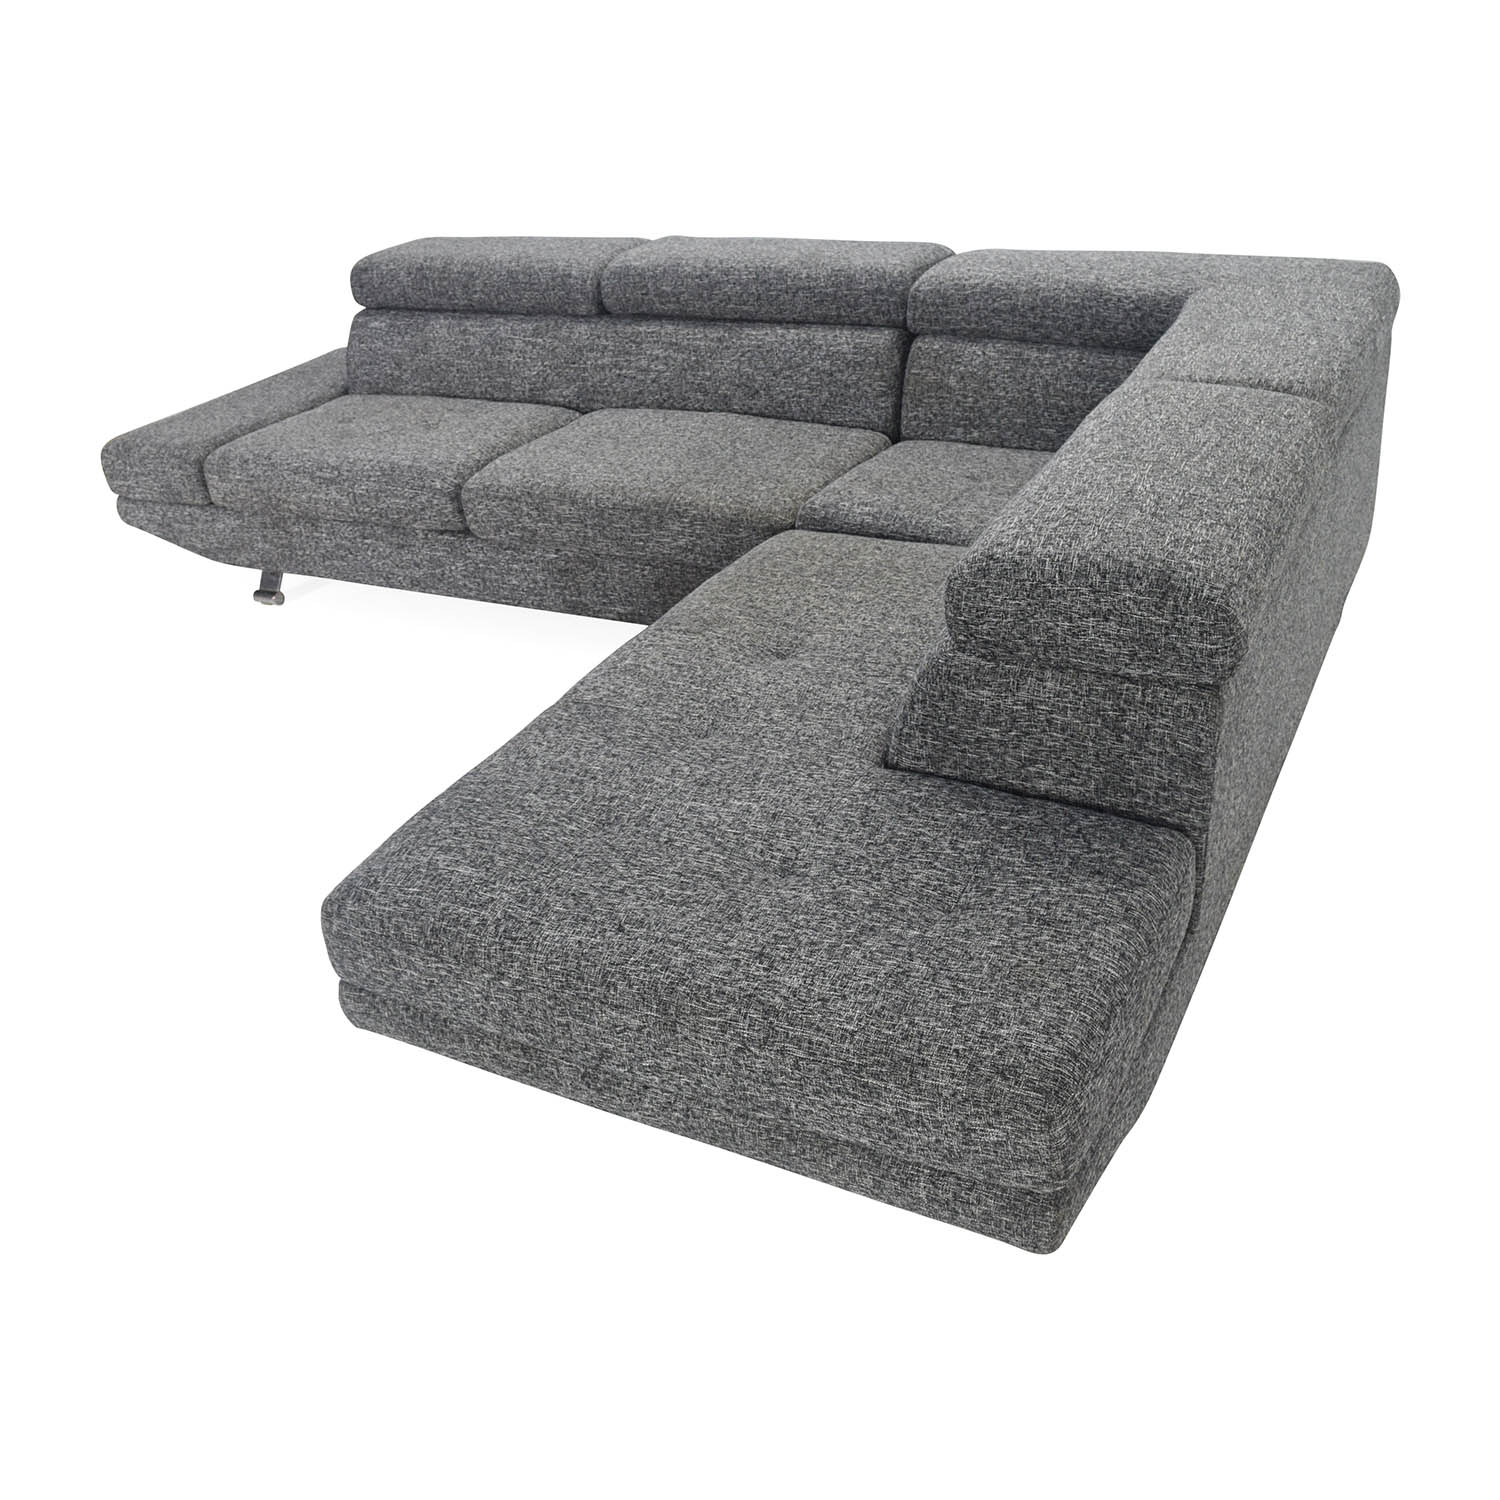 shop Gray Sectional Entertainment Couch Unknown brand Sofas